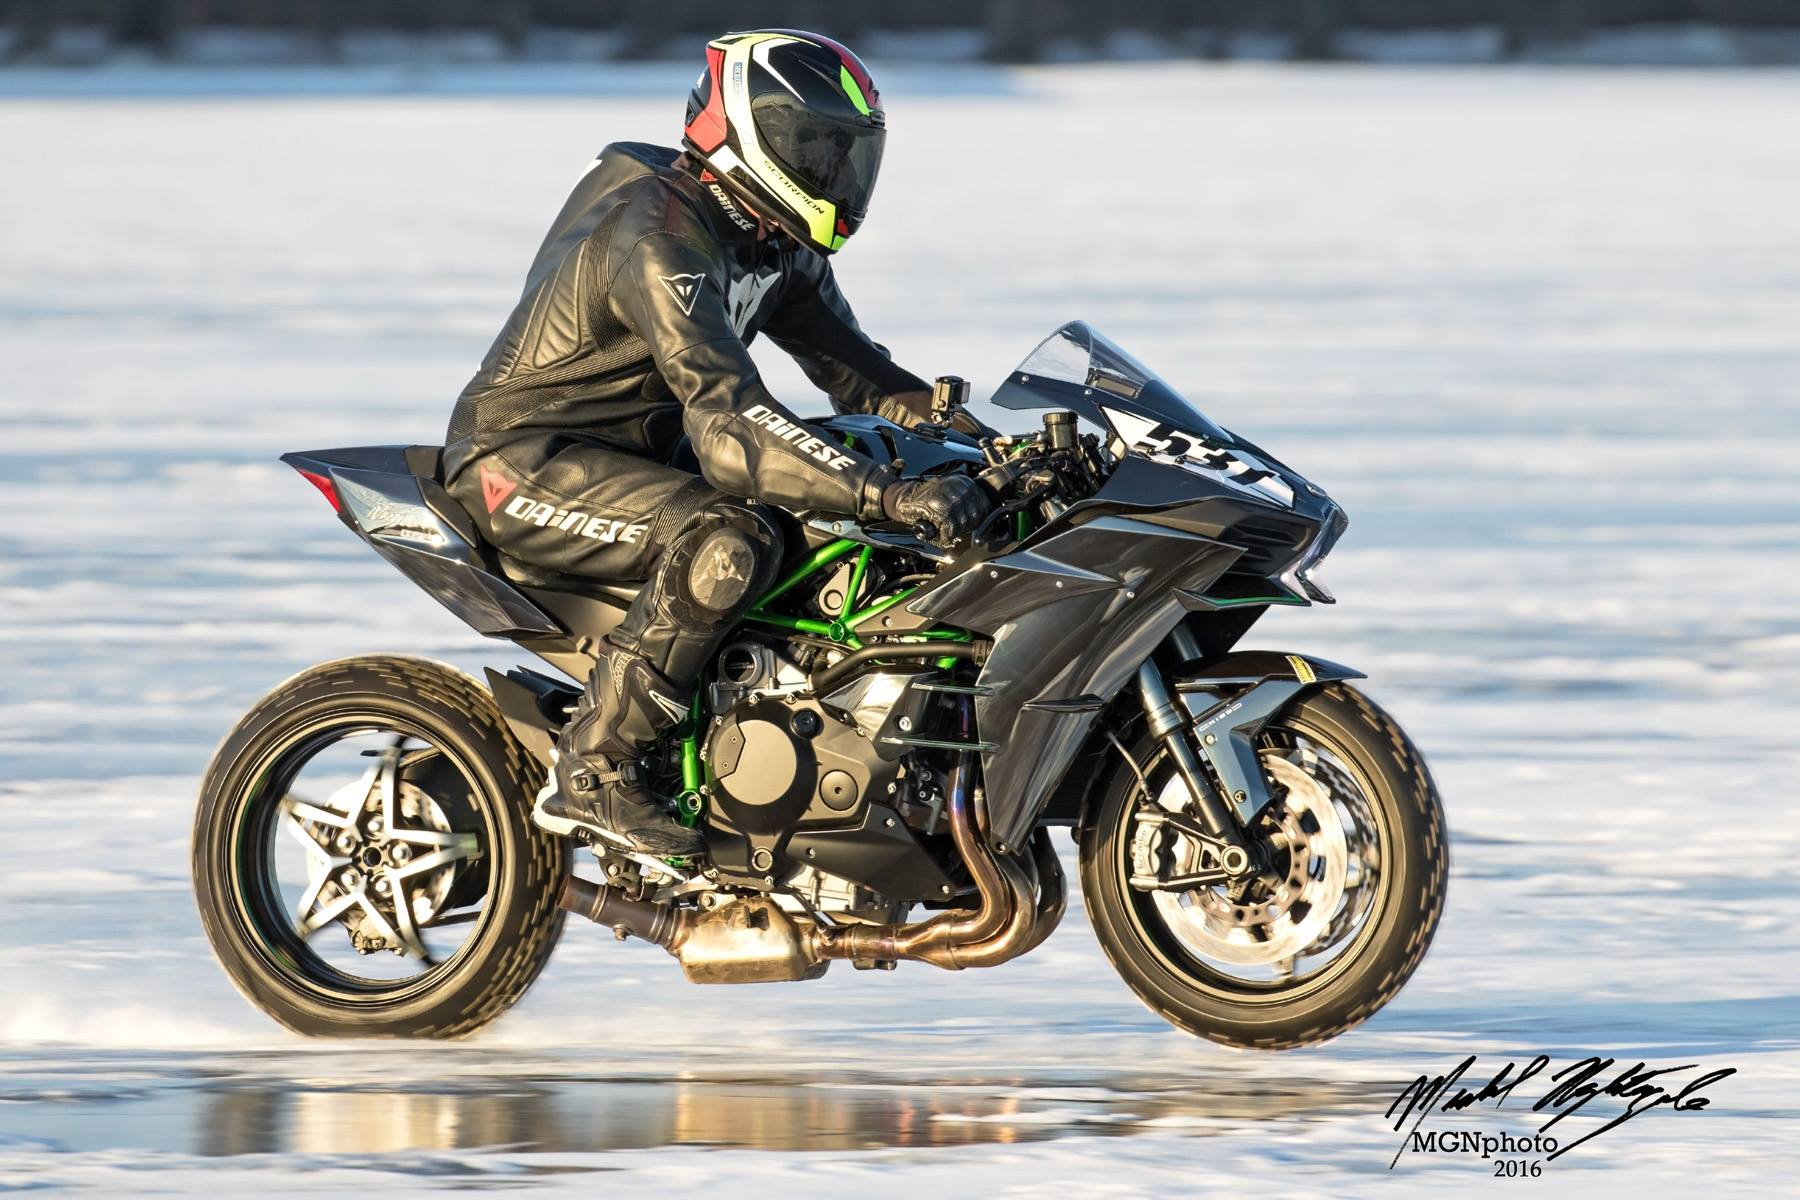 New World S Fastest Wheelie On Ice Attempt This Weekend